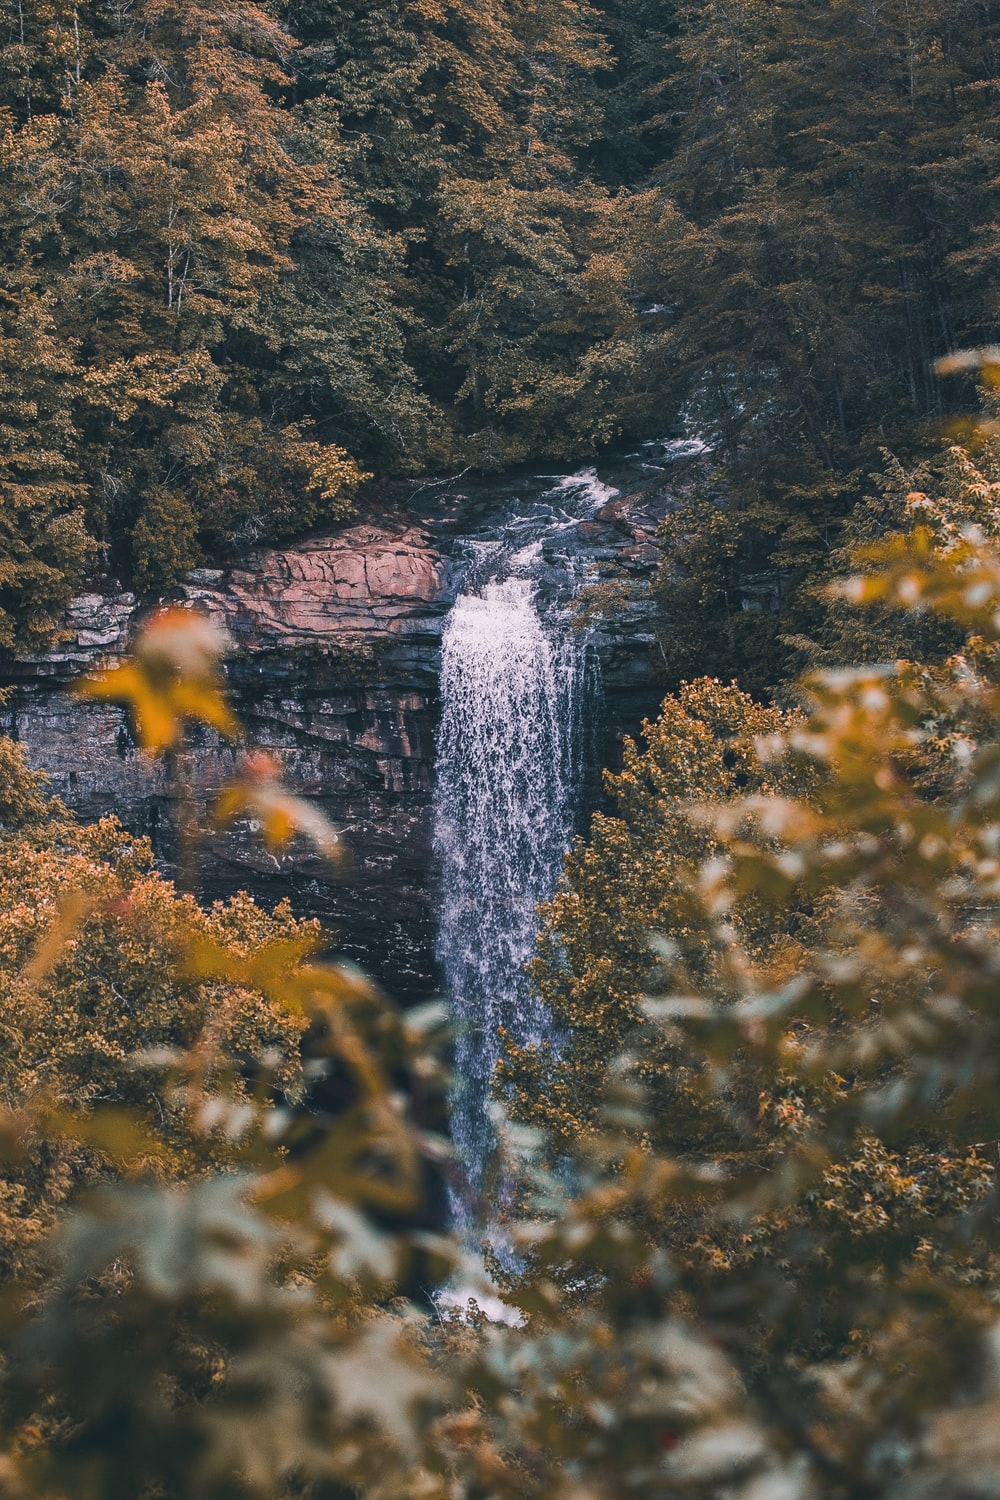 falls surrounded by green leaf trees at daytime